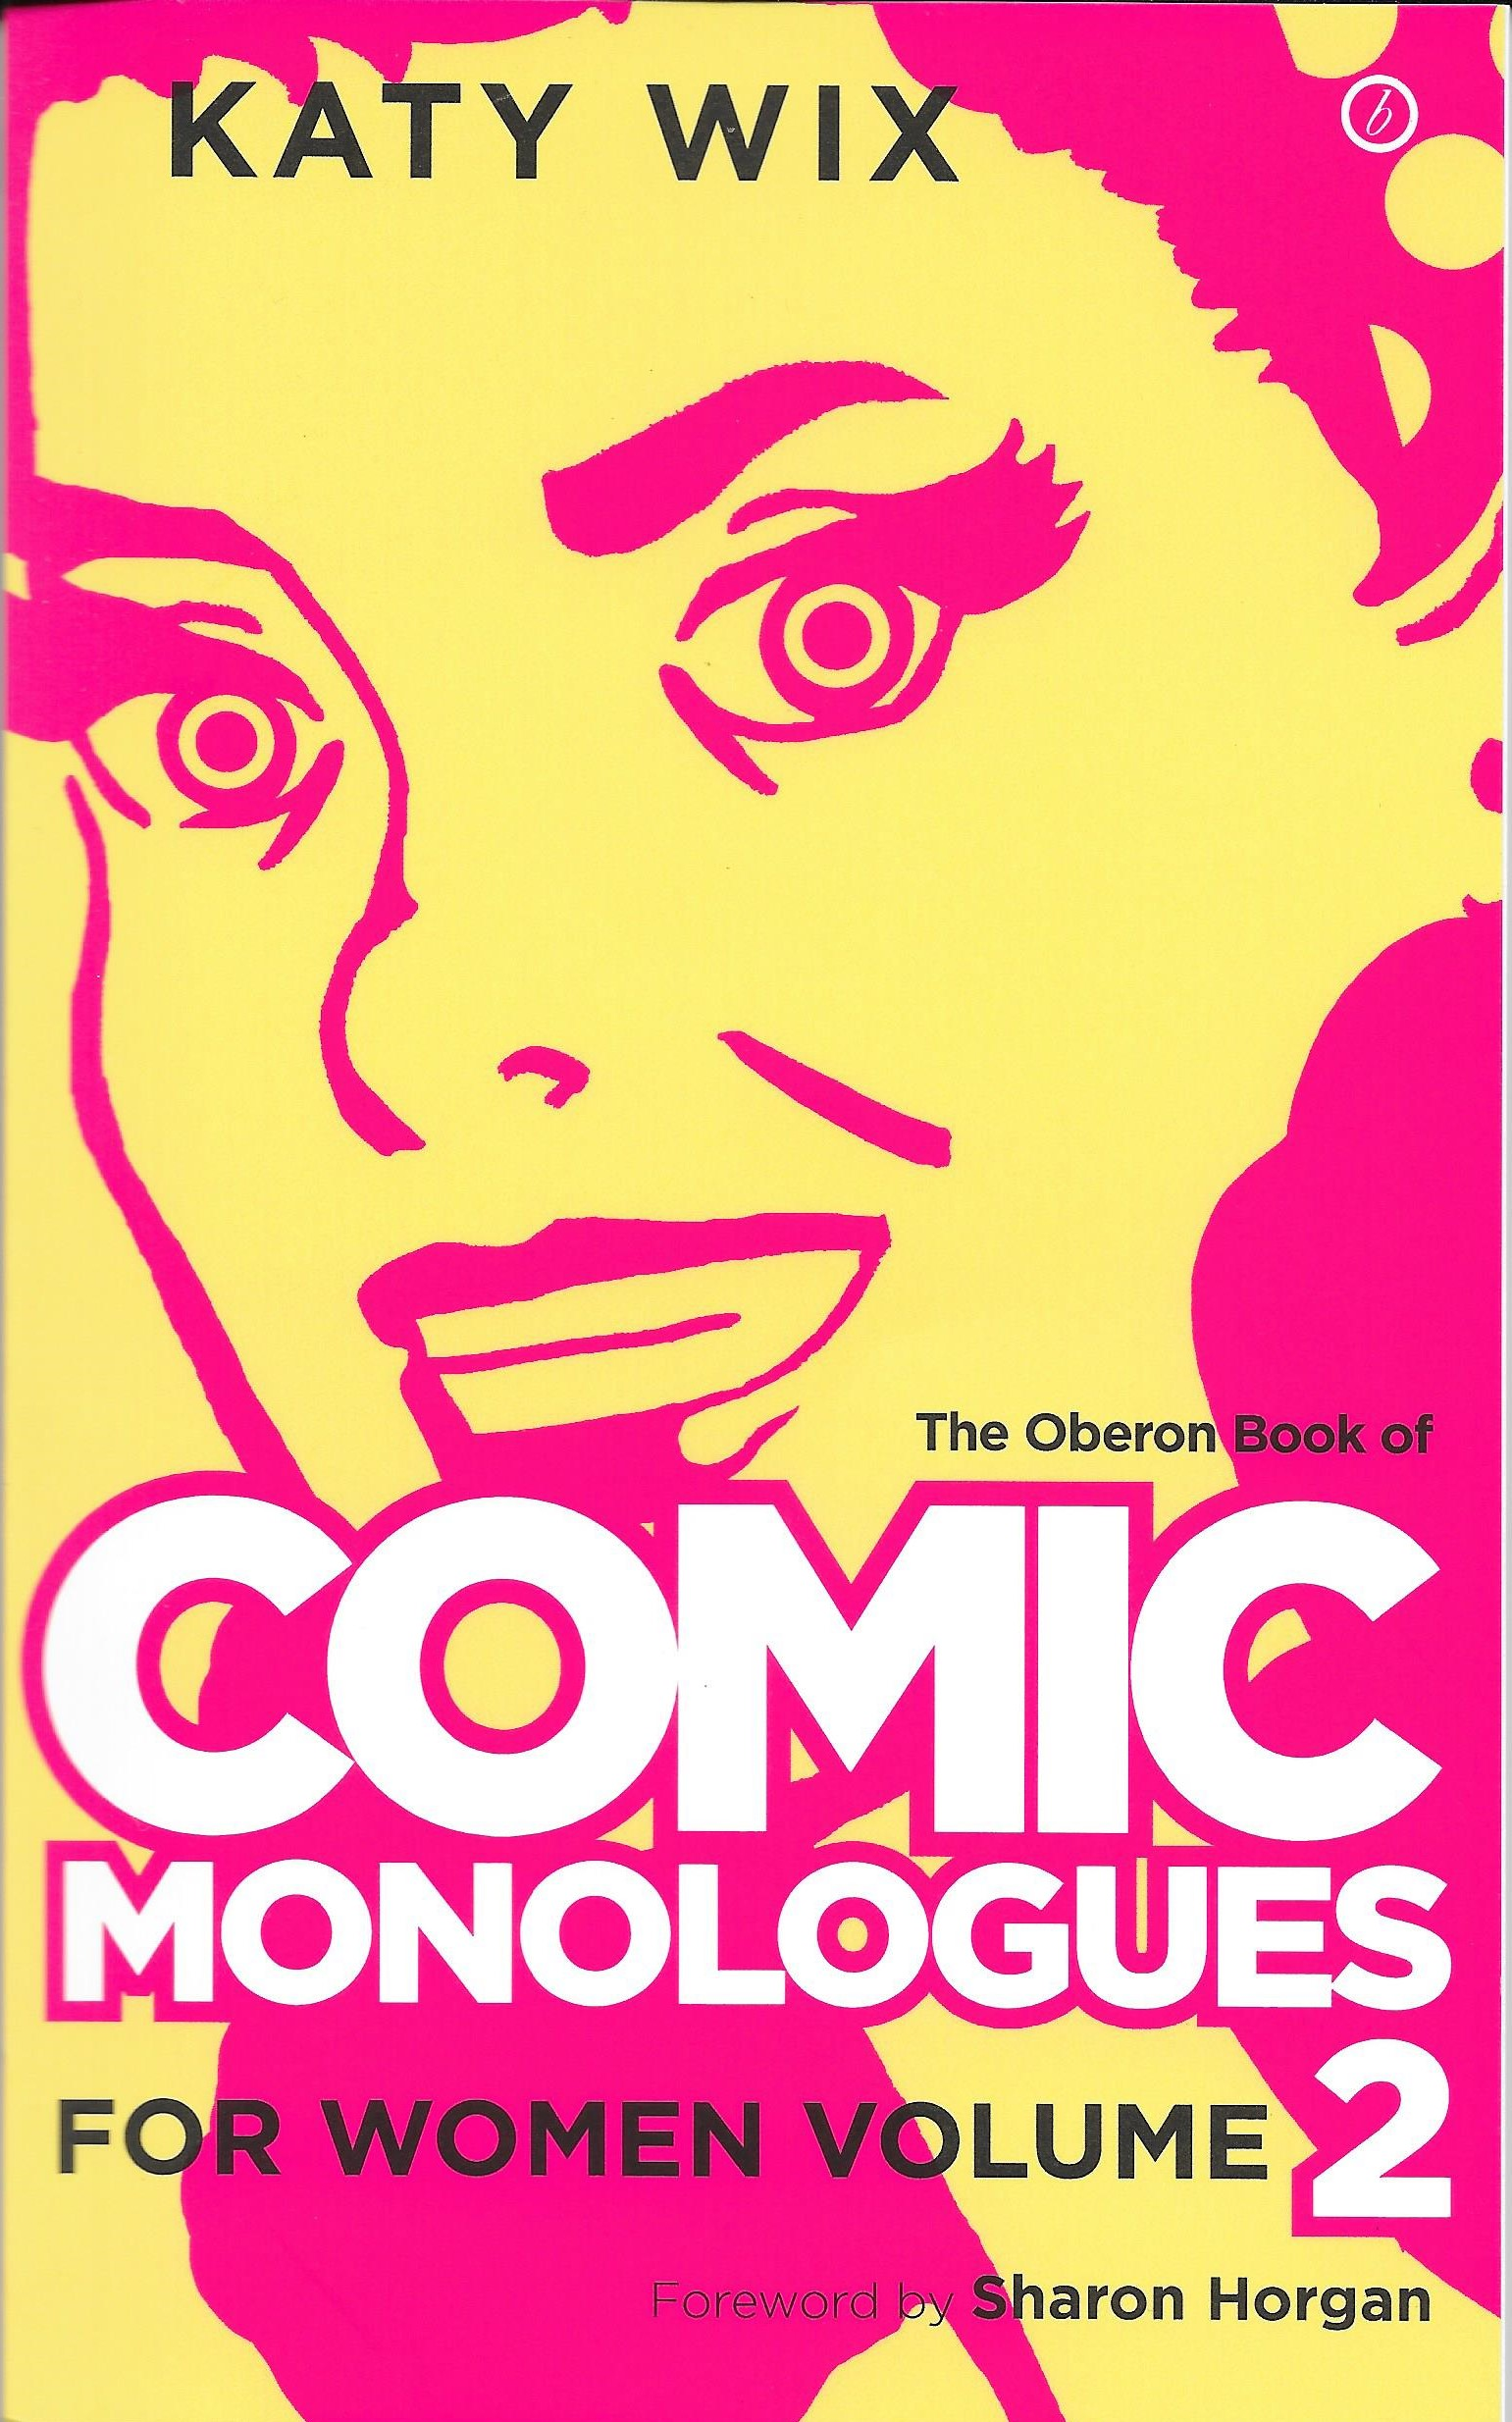 BOOK REVIEW: The Oberon Book of Comic Monologues for Women, Volume 2